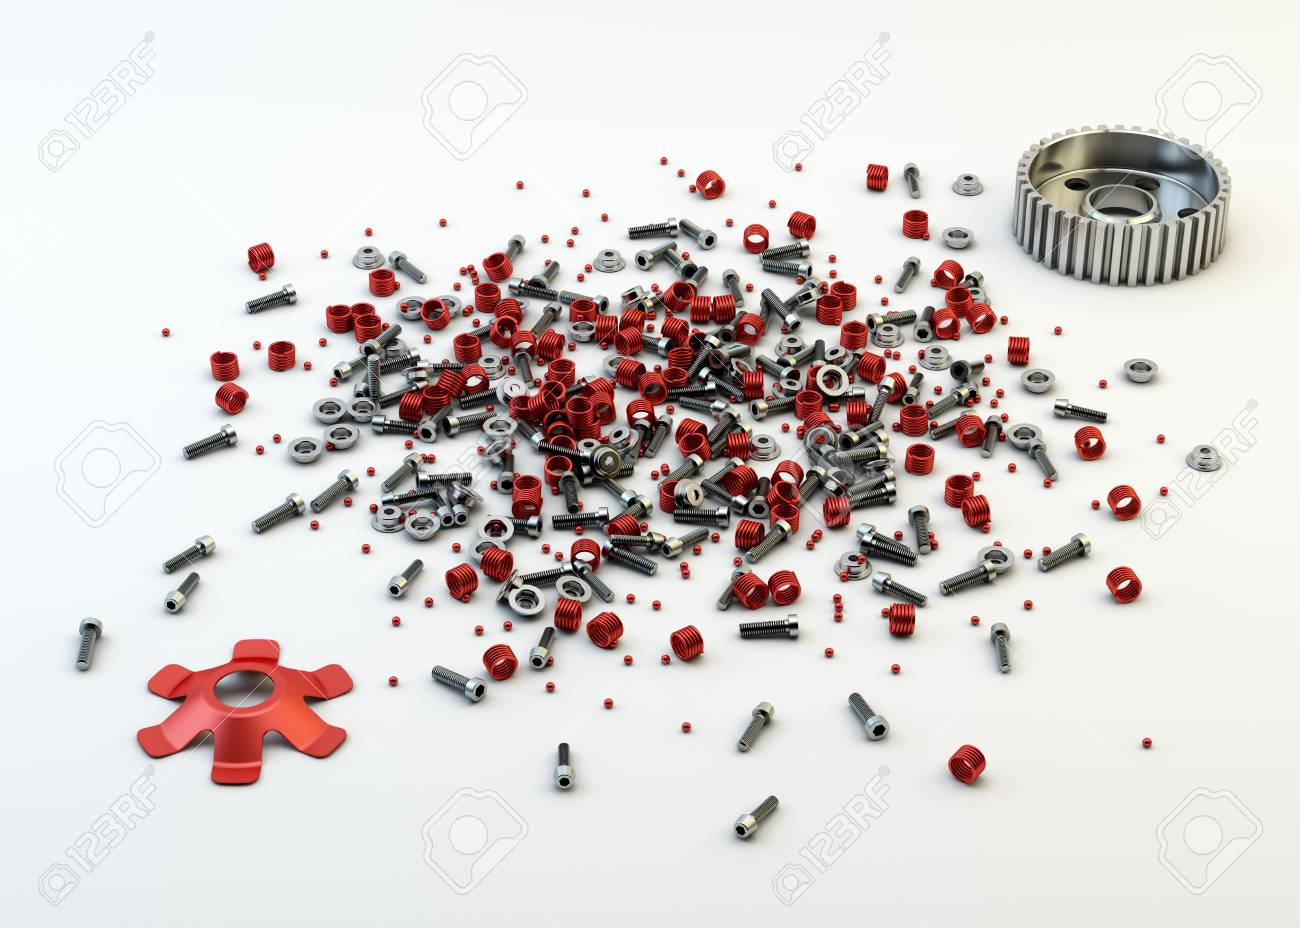 Pile of nuts and bolts from disassembled clutch isolated on white Stock Photo - 20776940